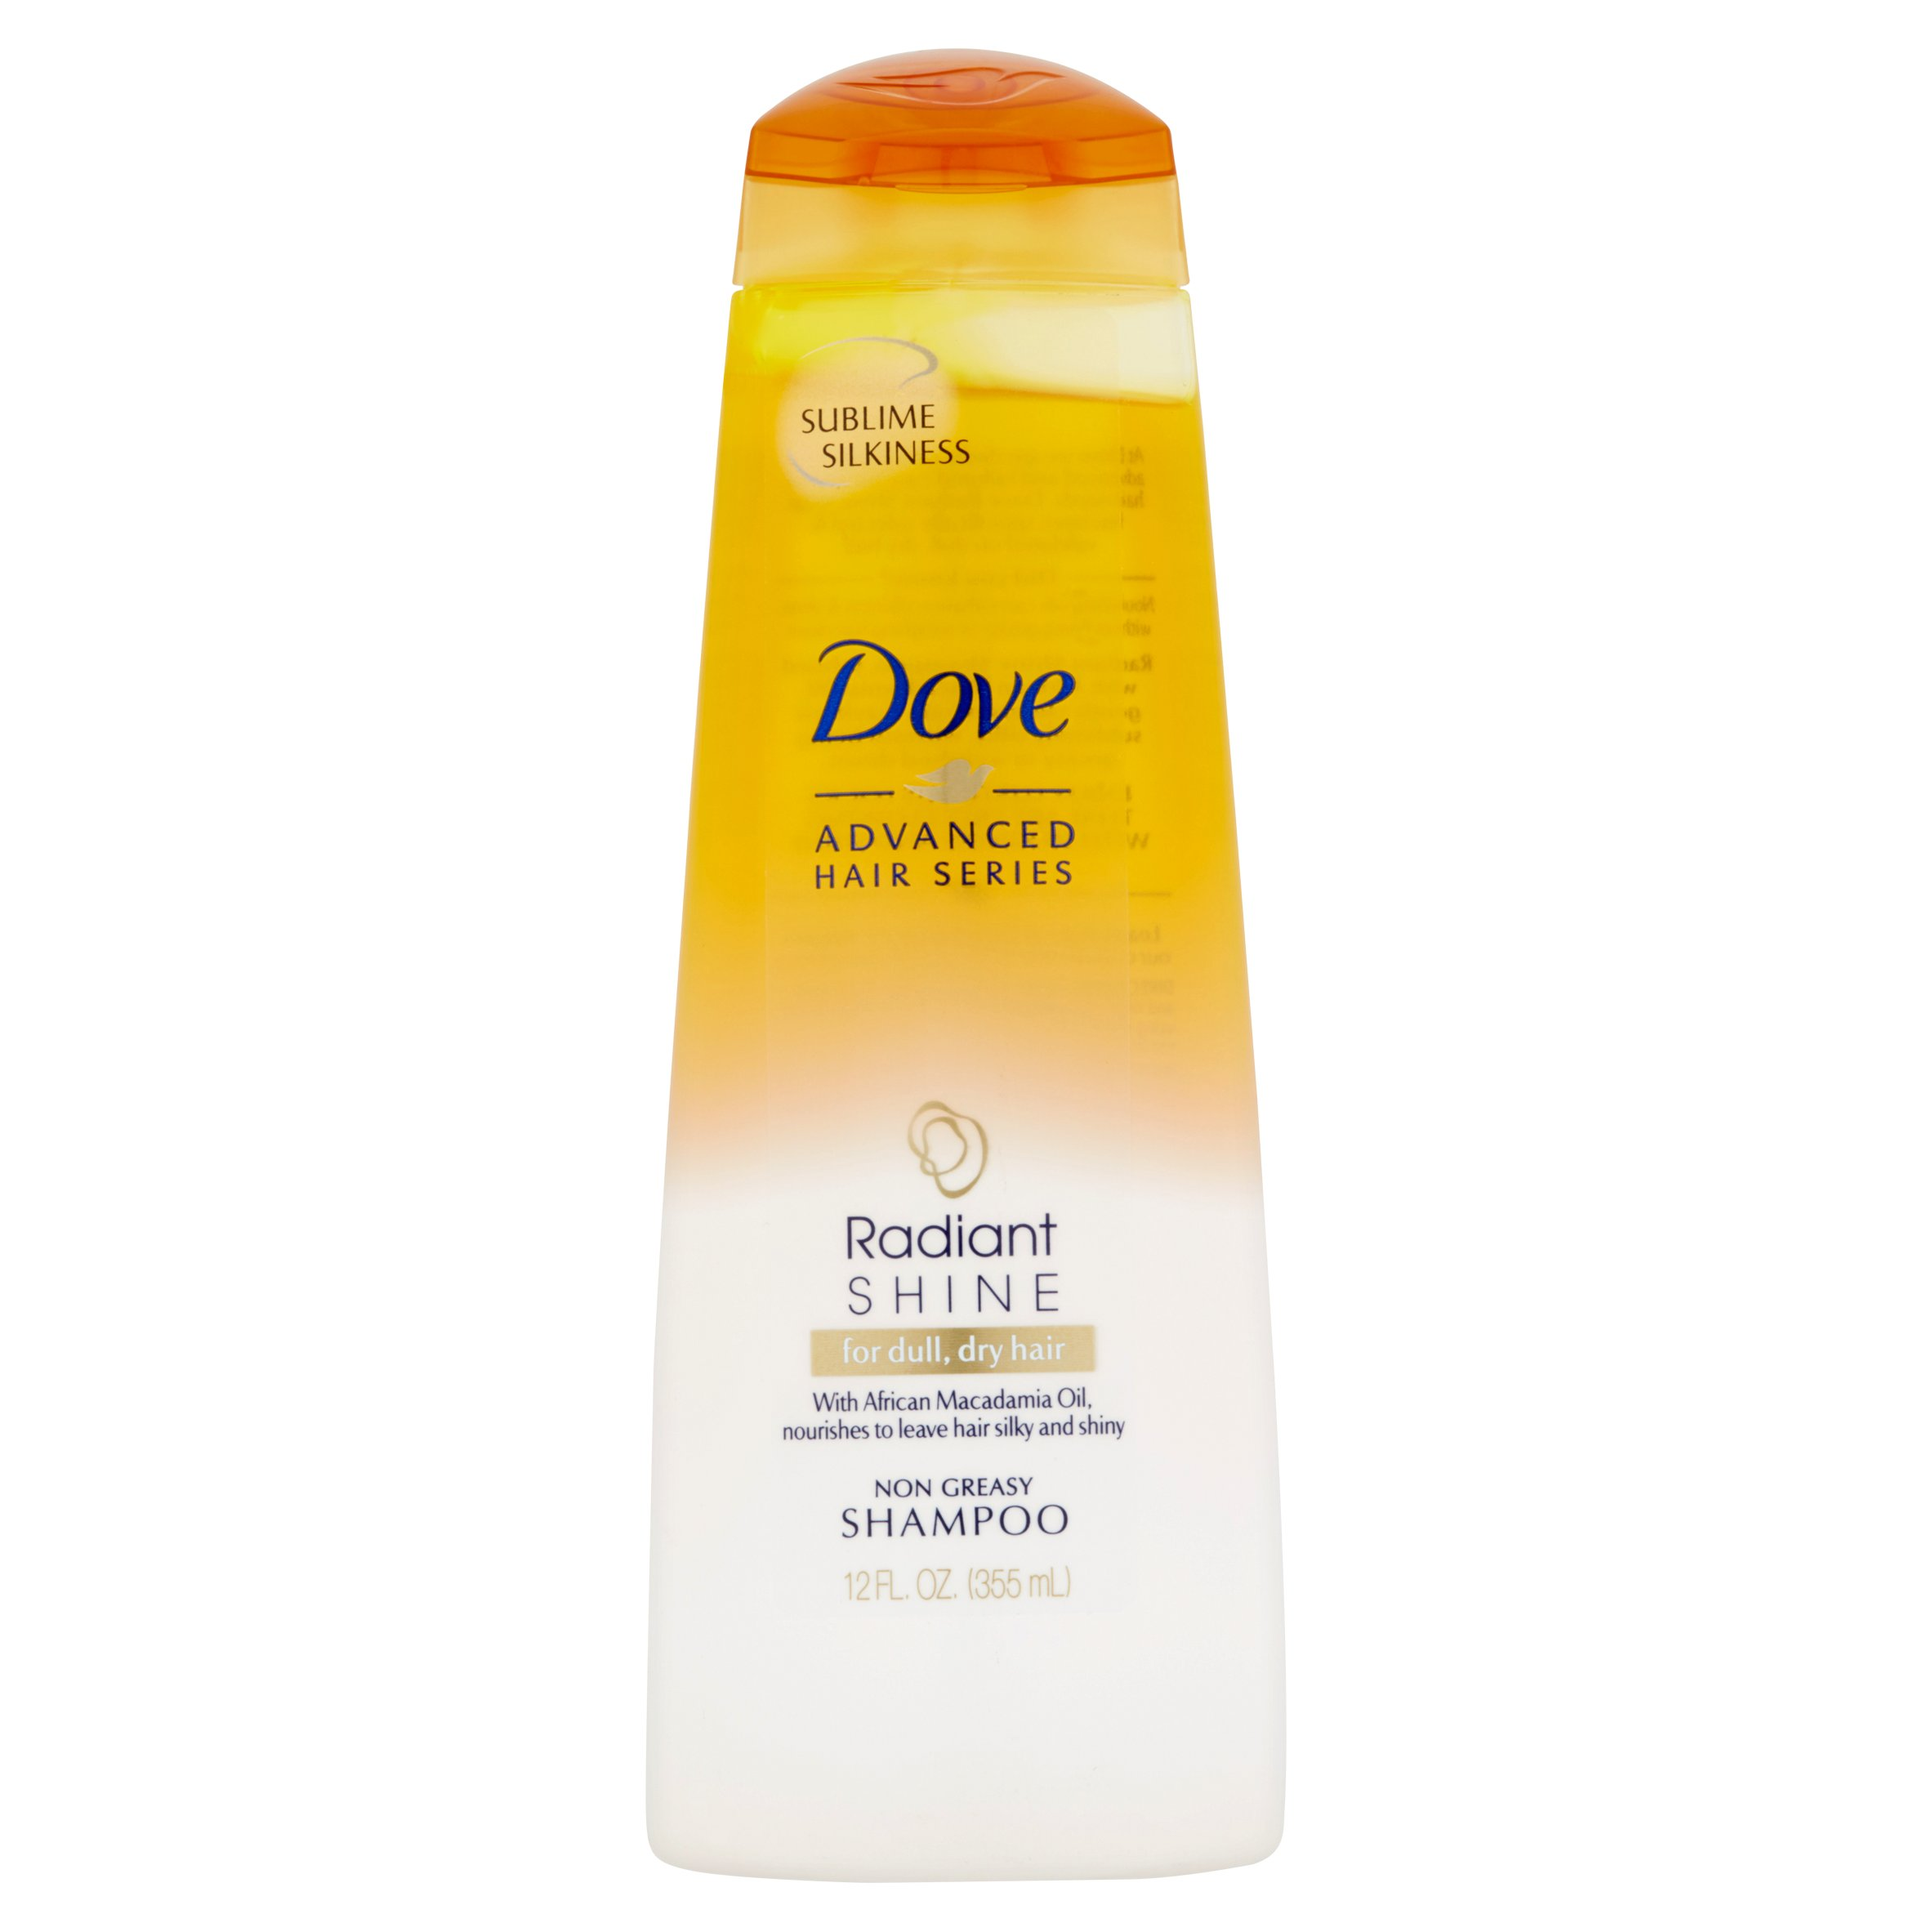 Dove Advanced Hair Series Radiant Shine Shampoo, 12 Oz - Walmart.com